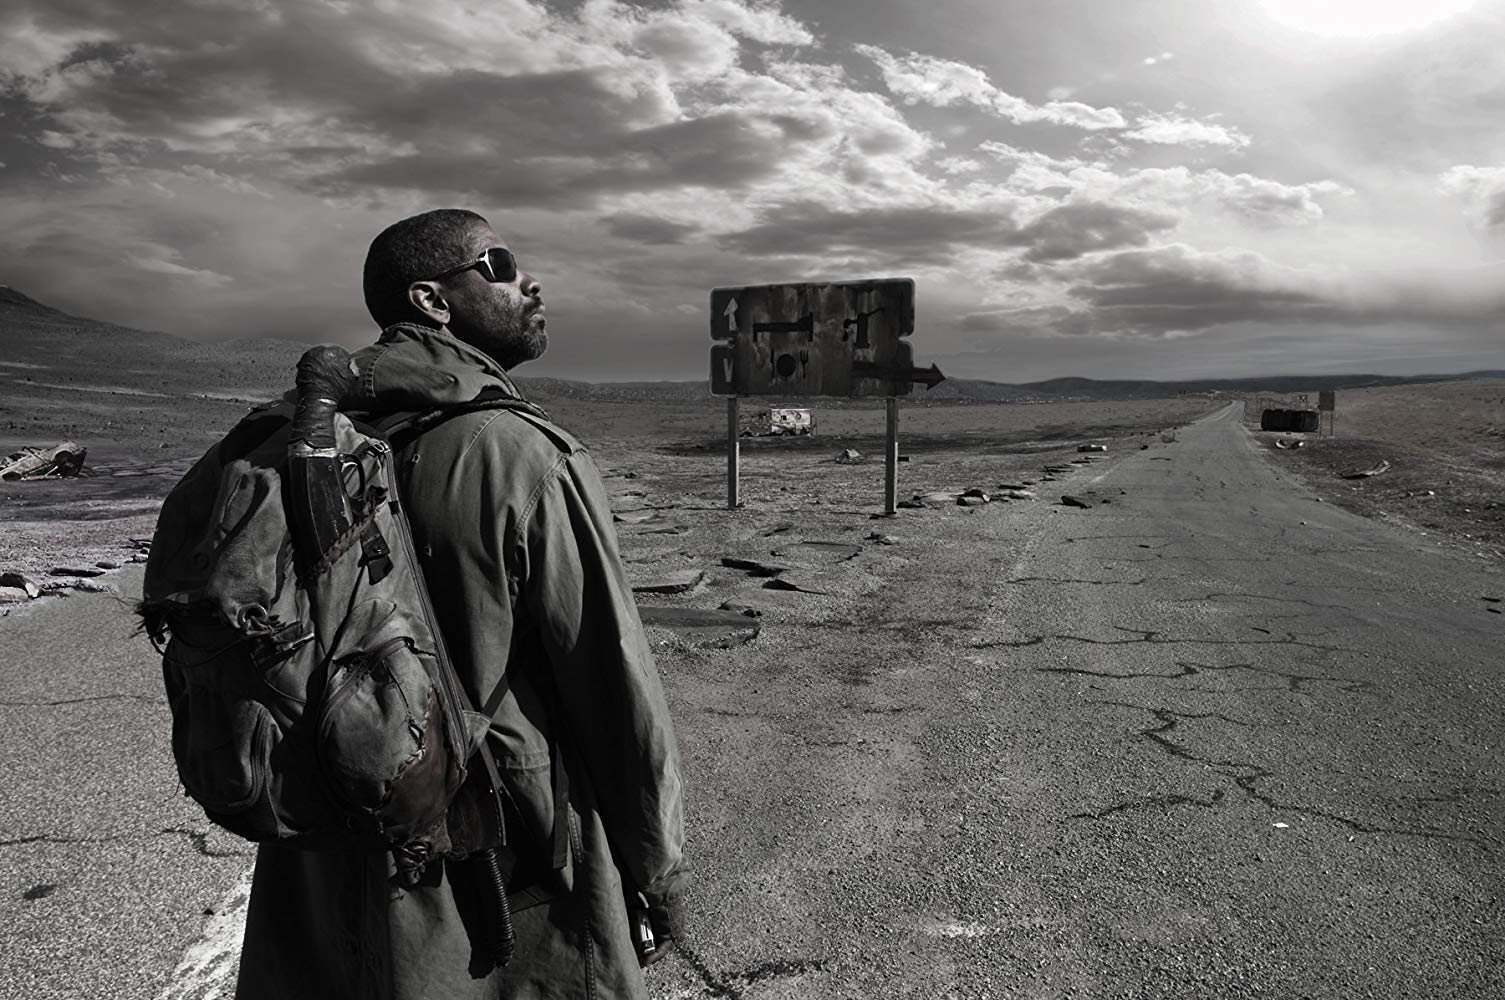 Denzel Washington wanders the post-holocaust wastelands in The Book of Eli (2010)